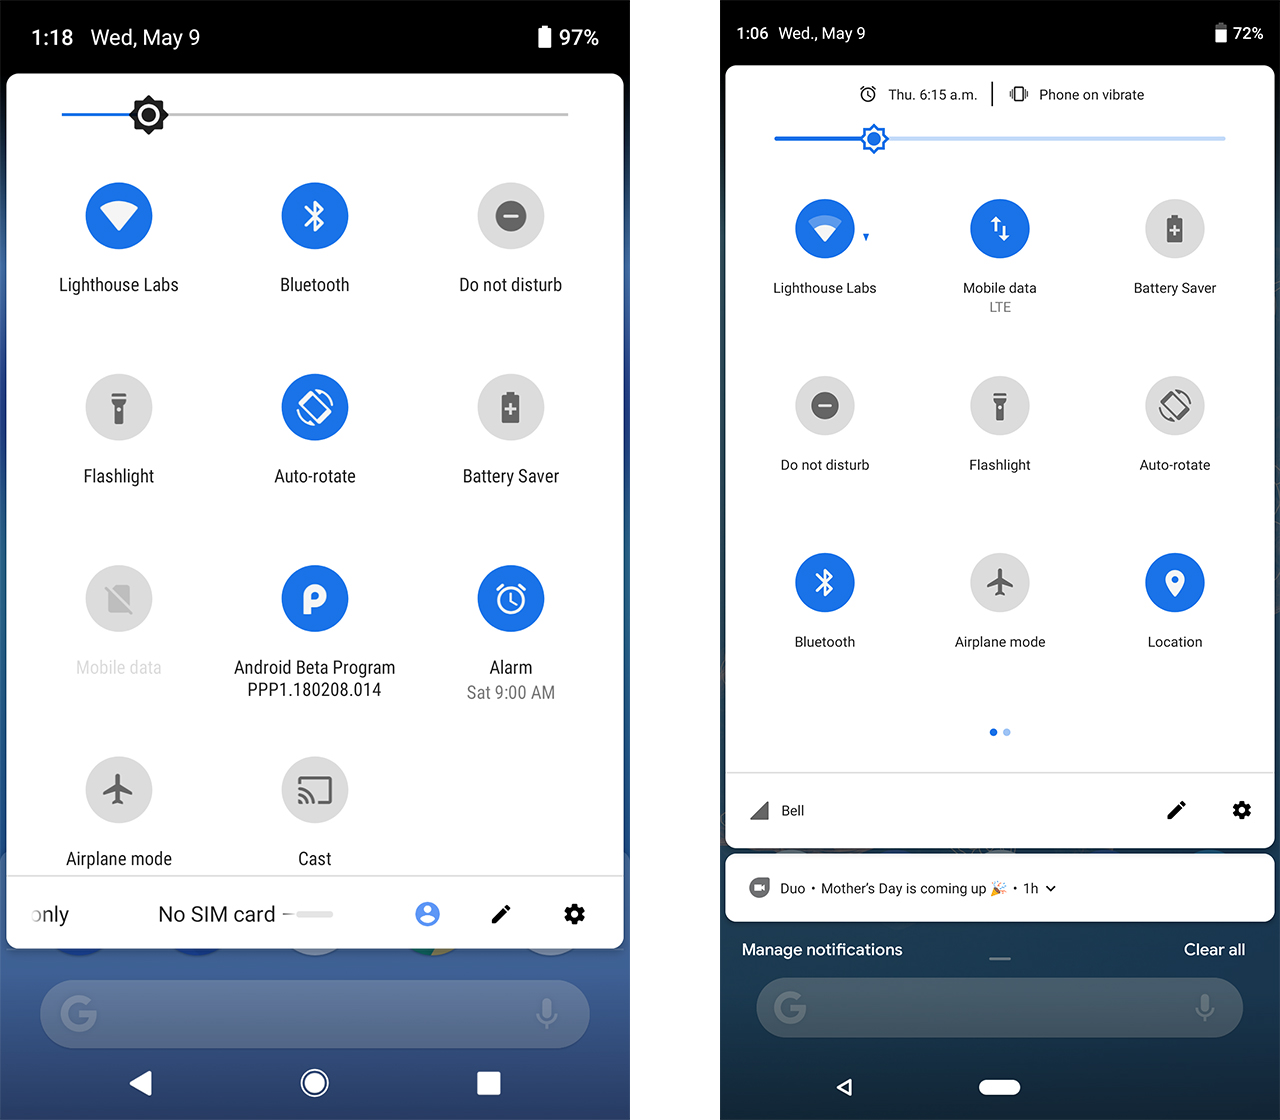 Google Assistant to book your appointments